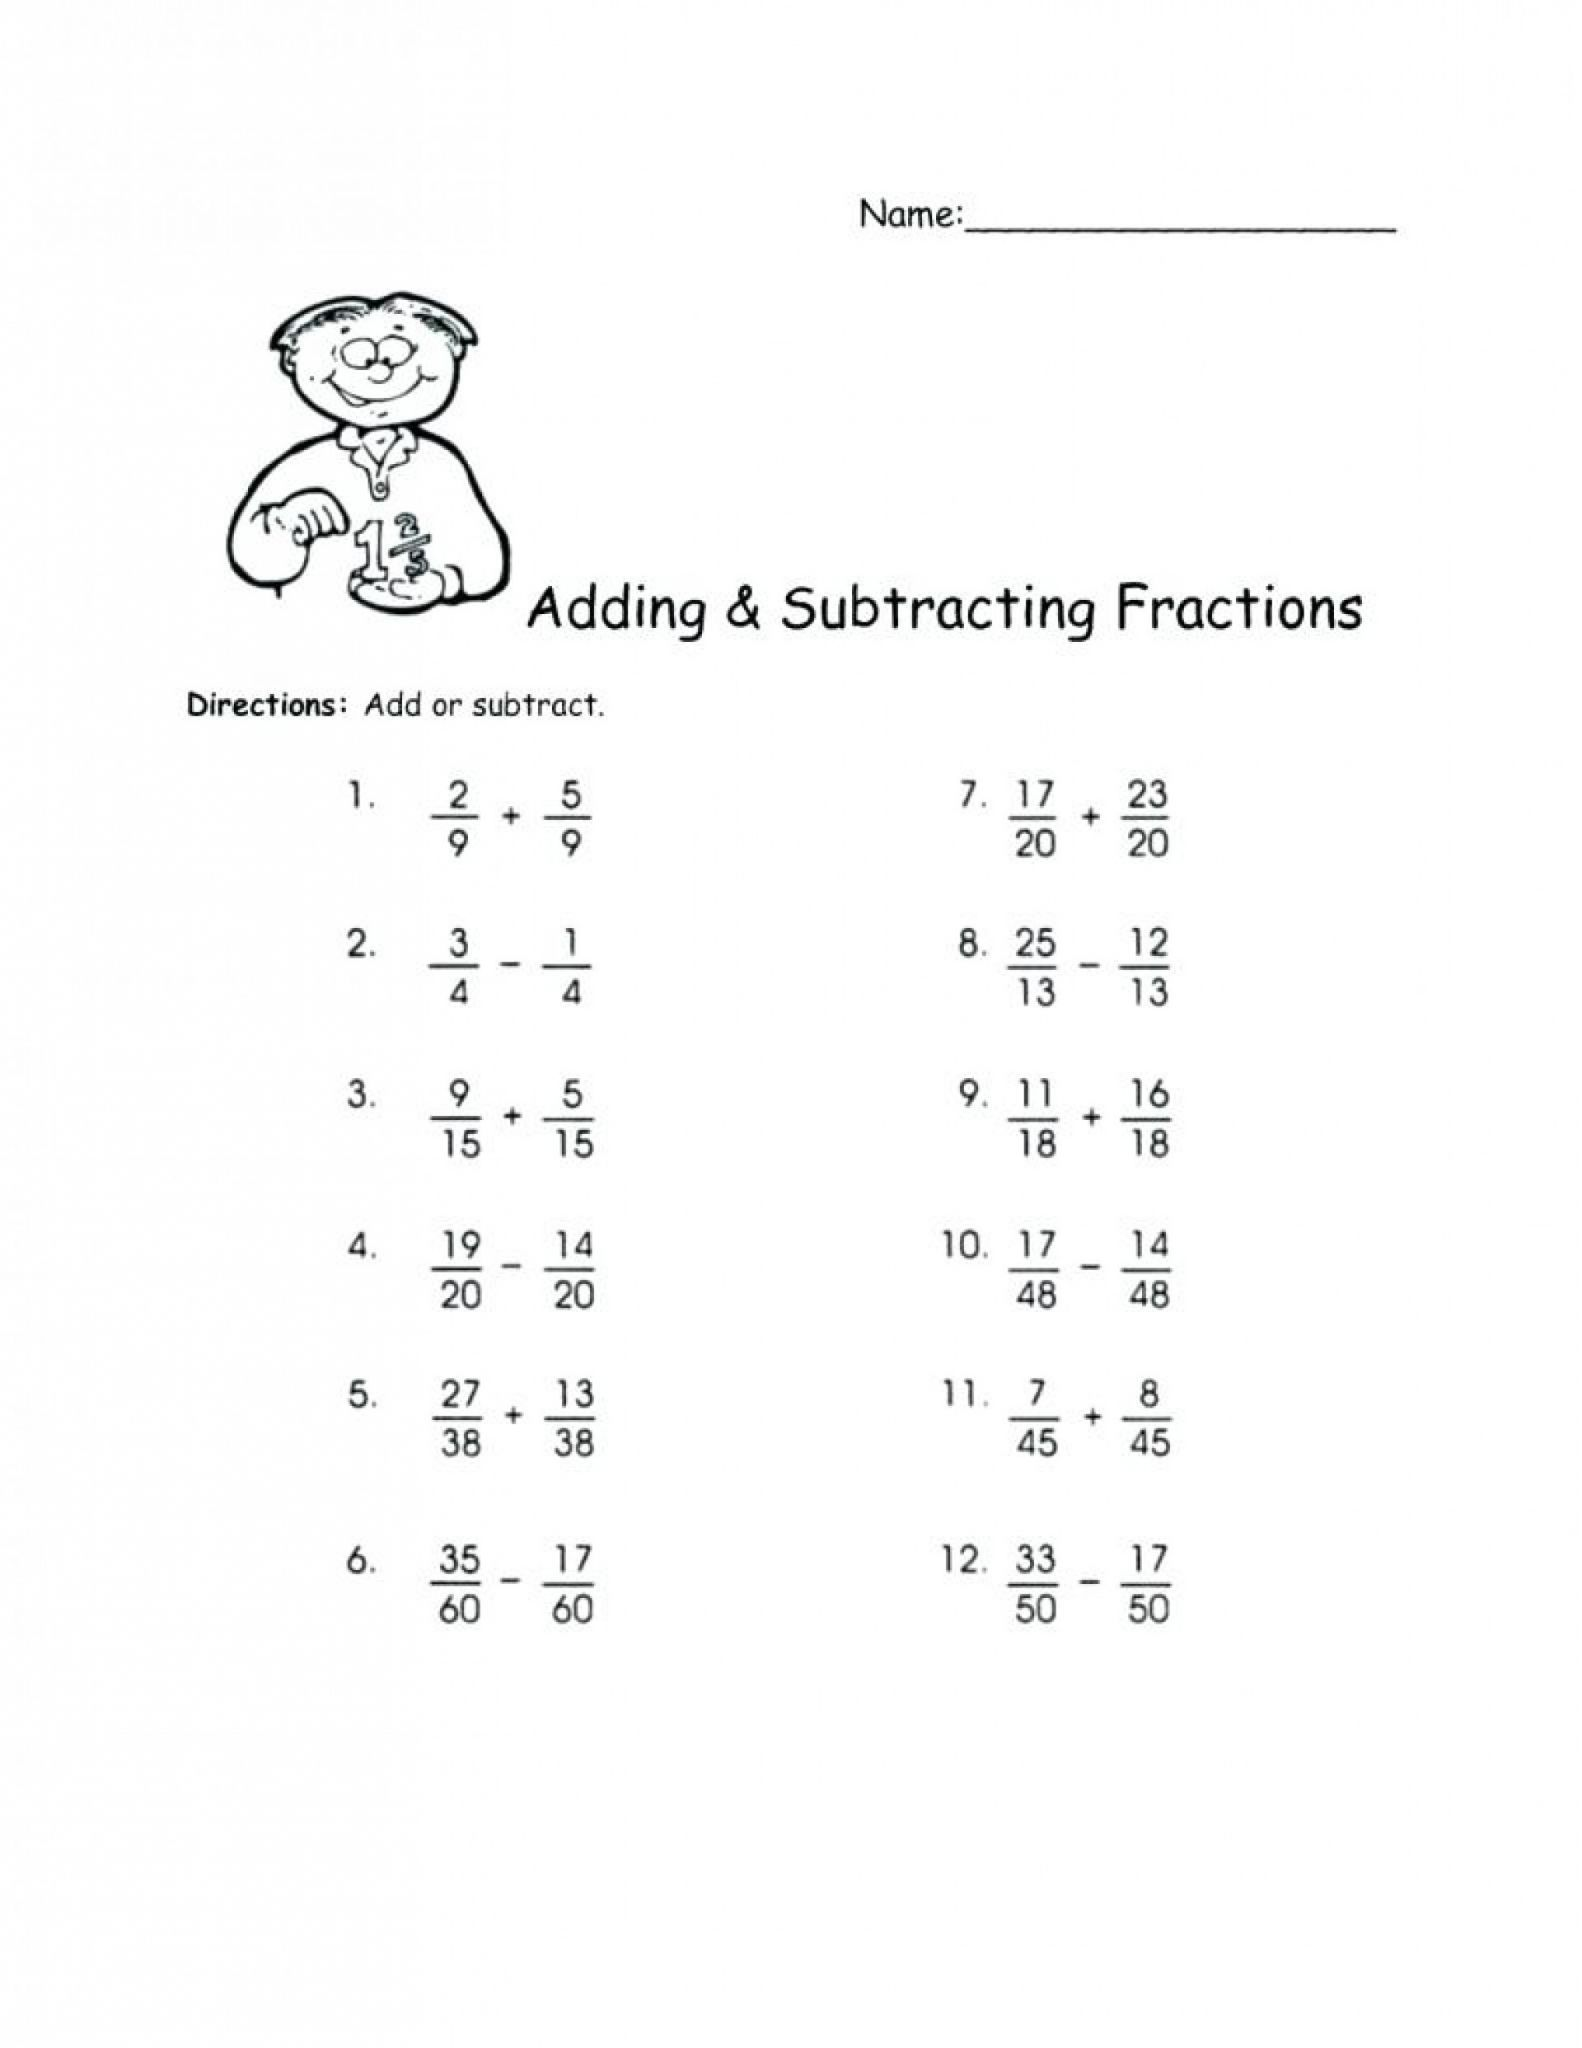 5 Free Math Worksheets Fourth Grade 4 Addition Adding 2